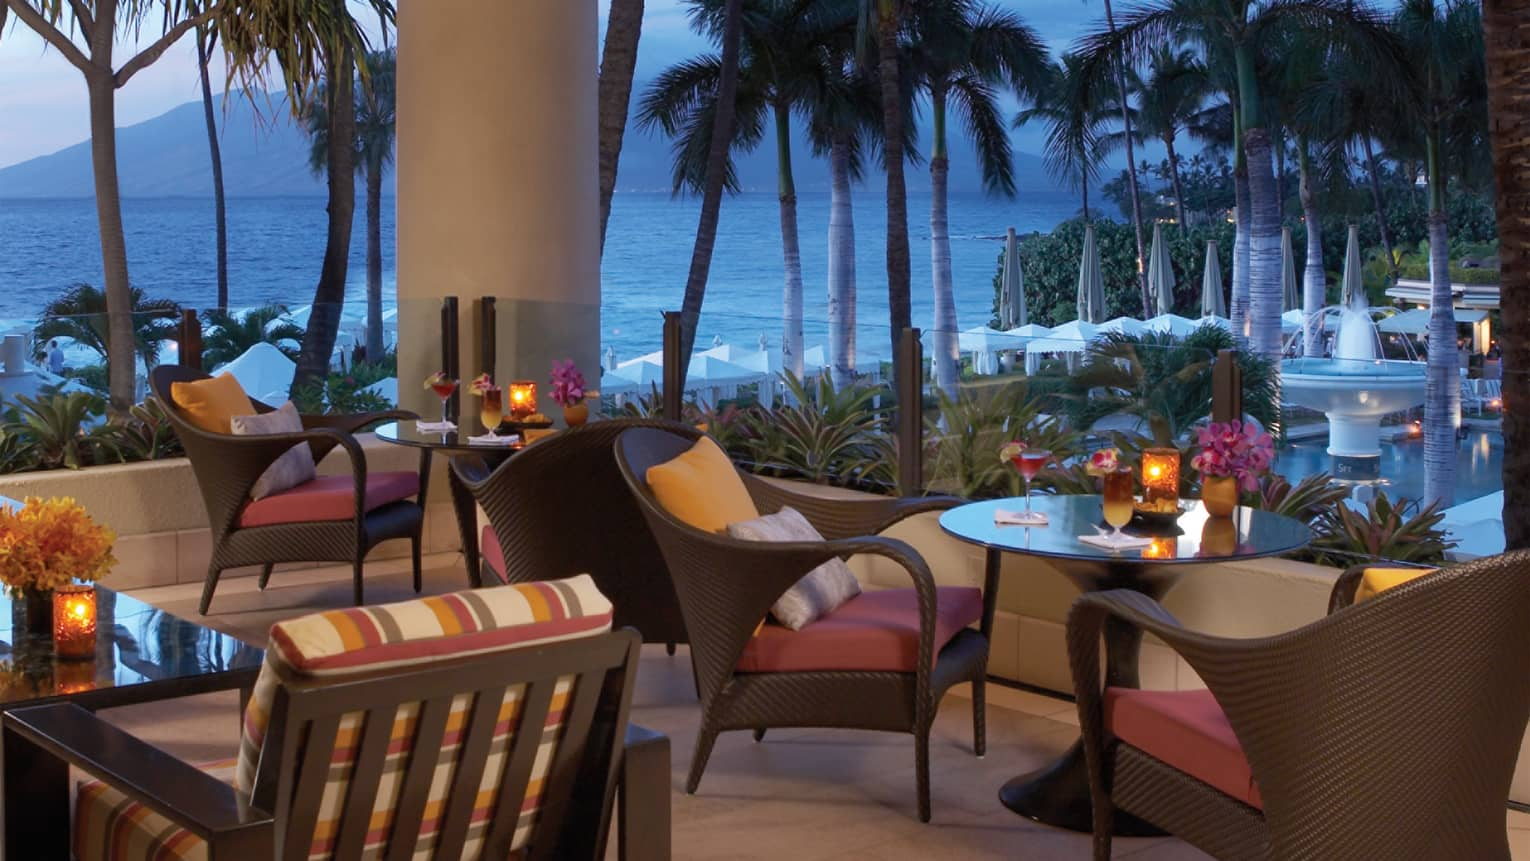 Lobby Lounge at dusk with brown wicker dining chairs and tables on patio, fruity cocktails and glowing candles